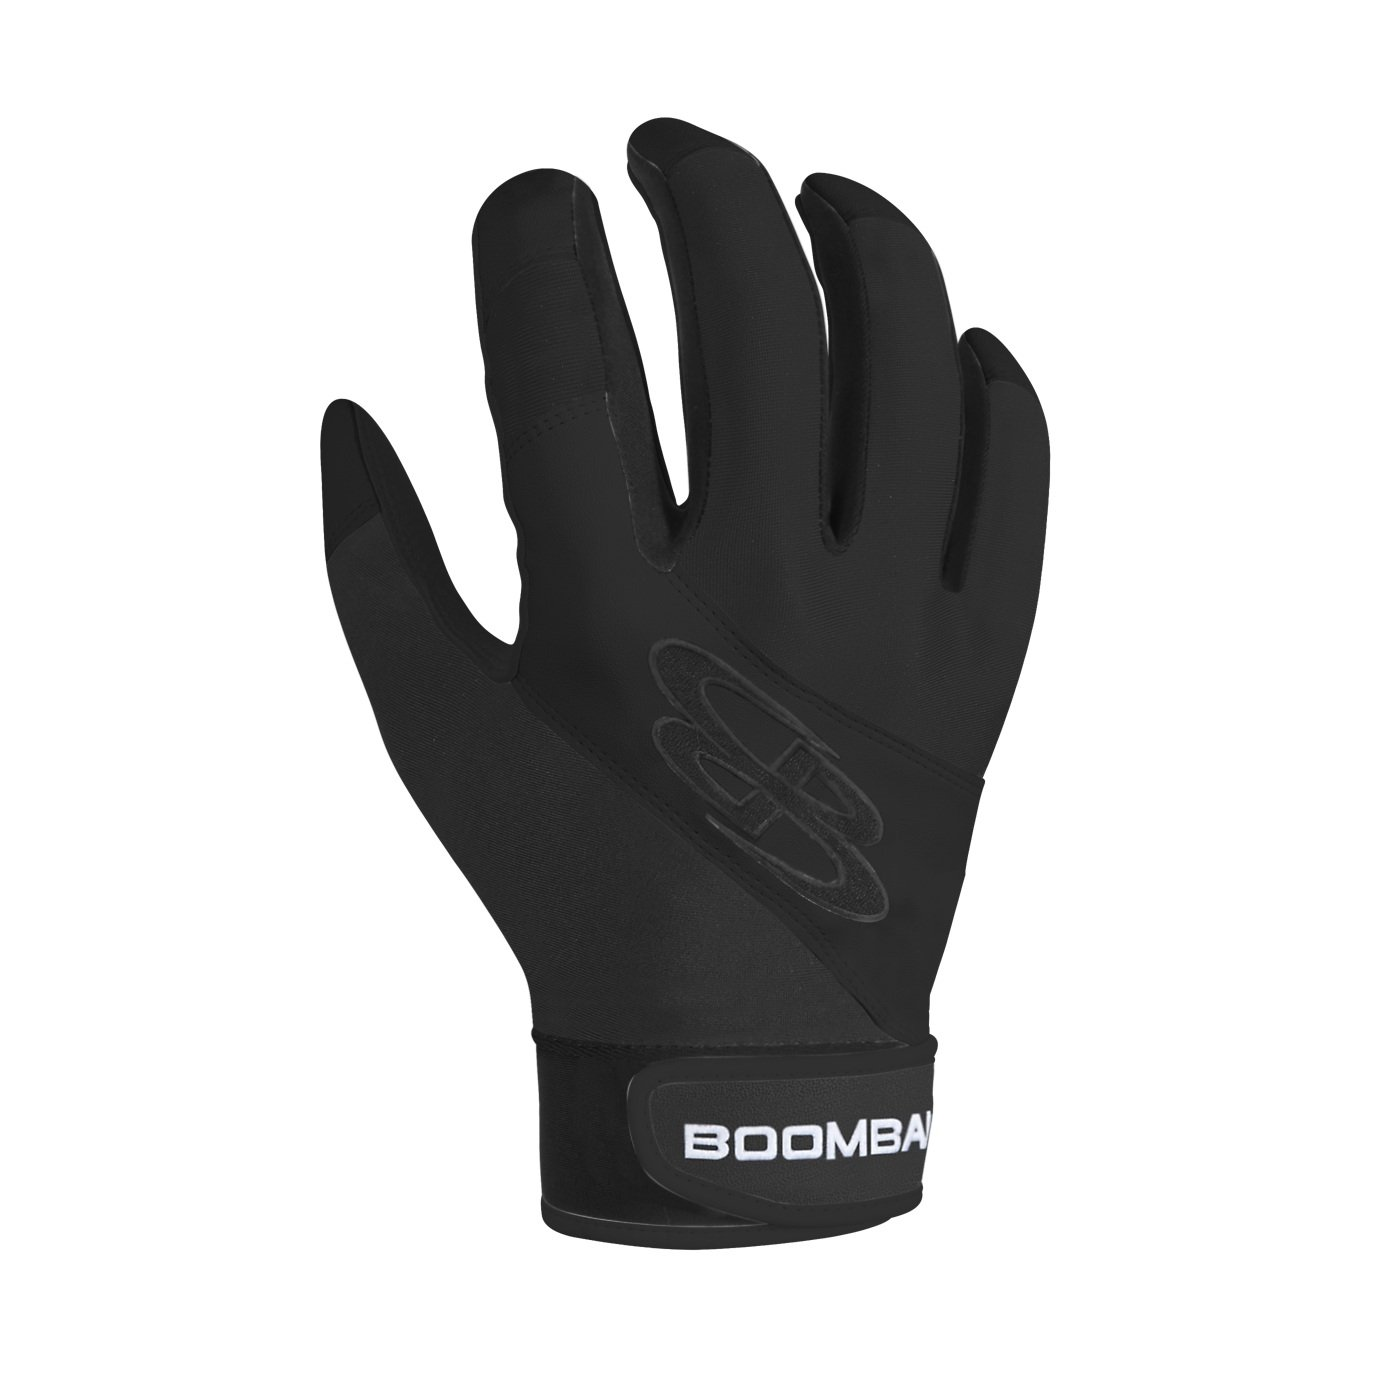 Black batting gloves - Amazon Com Boombah Torva Batting Glove 1260 Youth Multiple Color Options Multiple Sizes Sold As A Pair Sports Outdoors